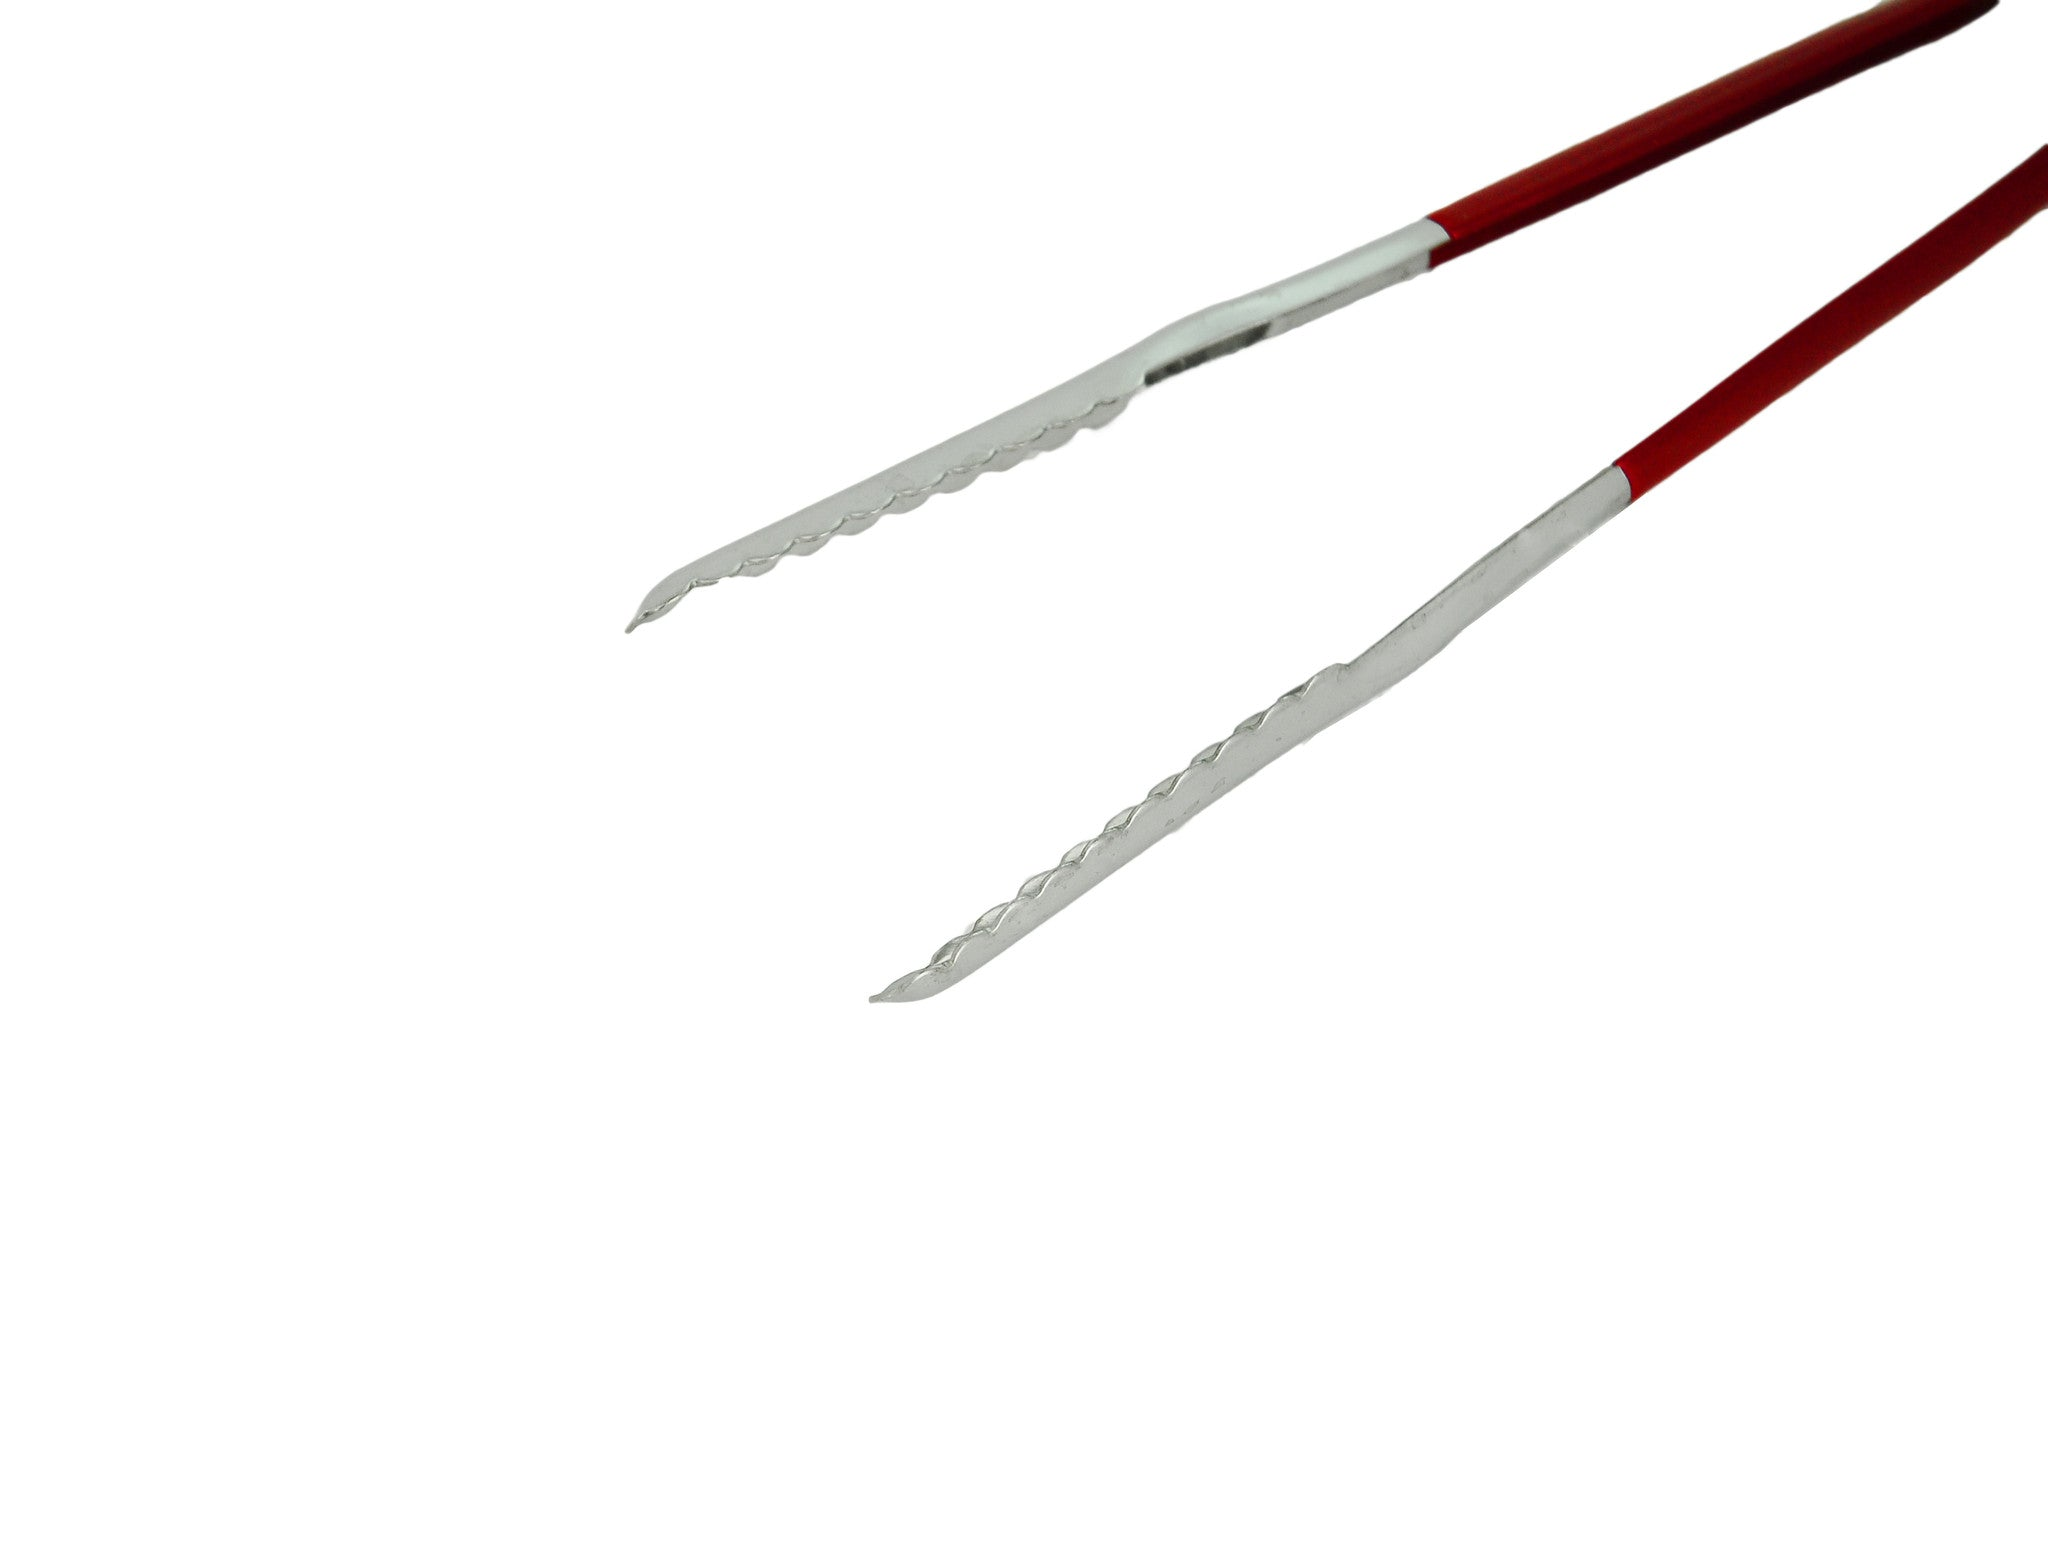 Stainless Steel Tongs with Coated Red Handle (코팅 얼음 집게), Kitchen Tools - eKitchenary